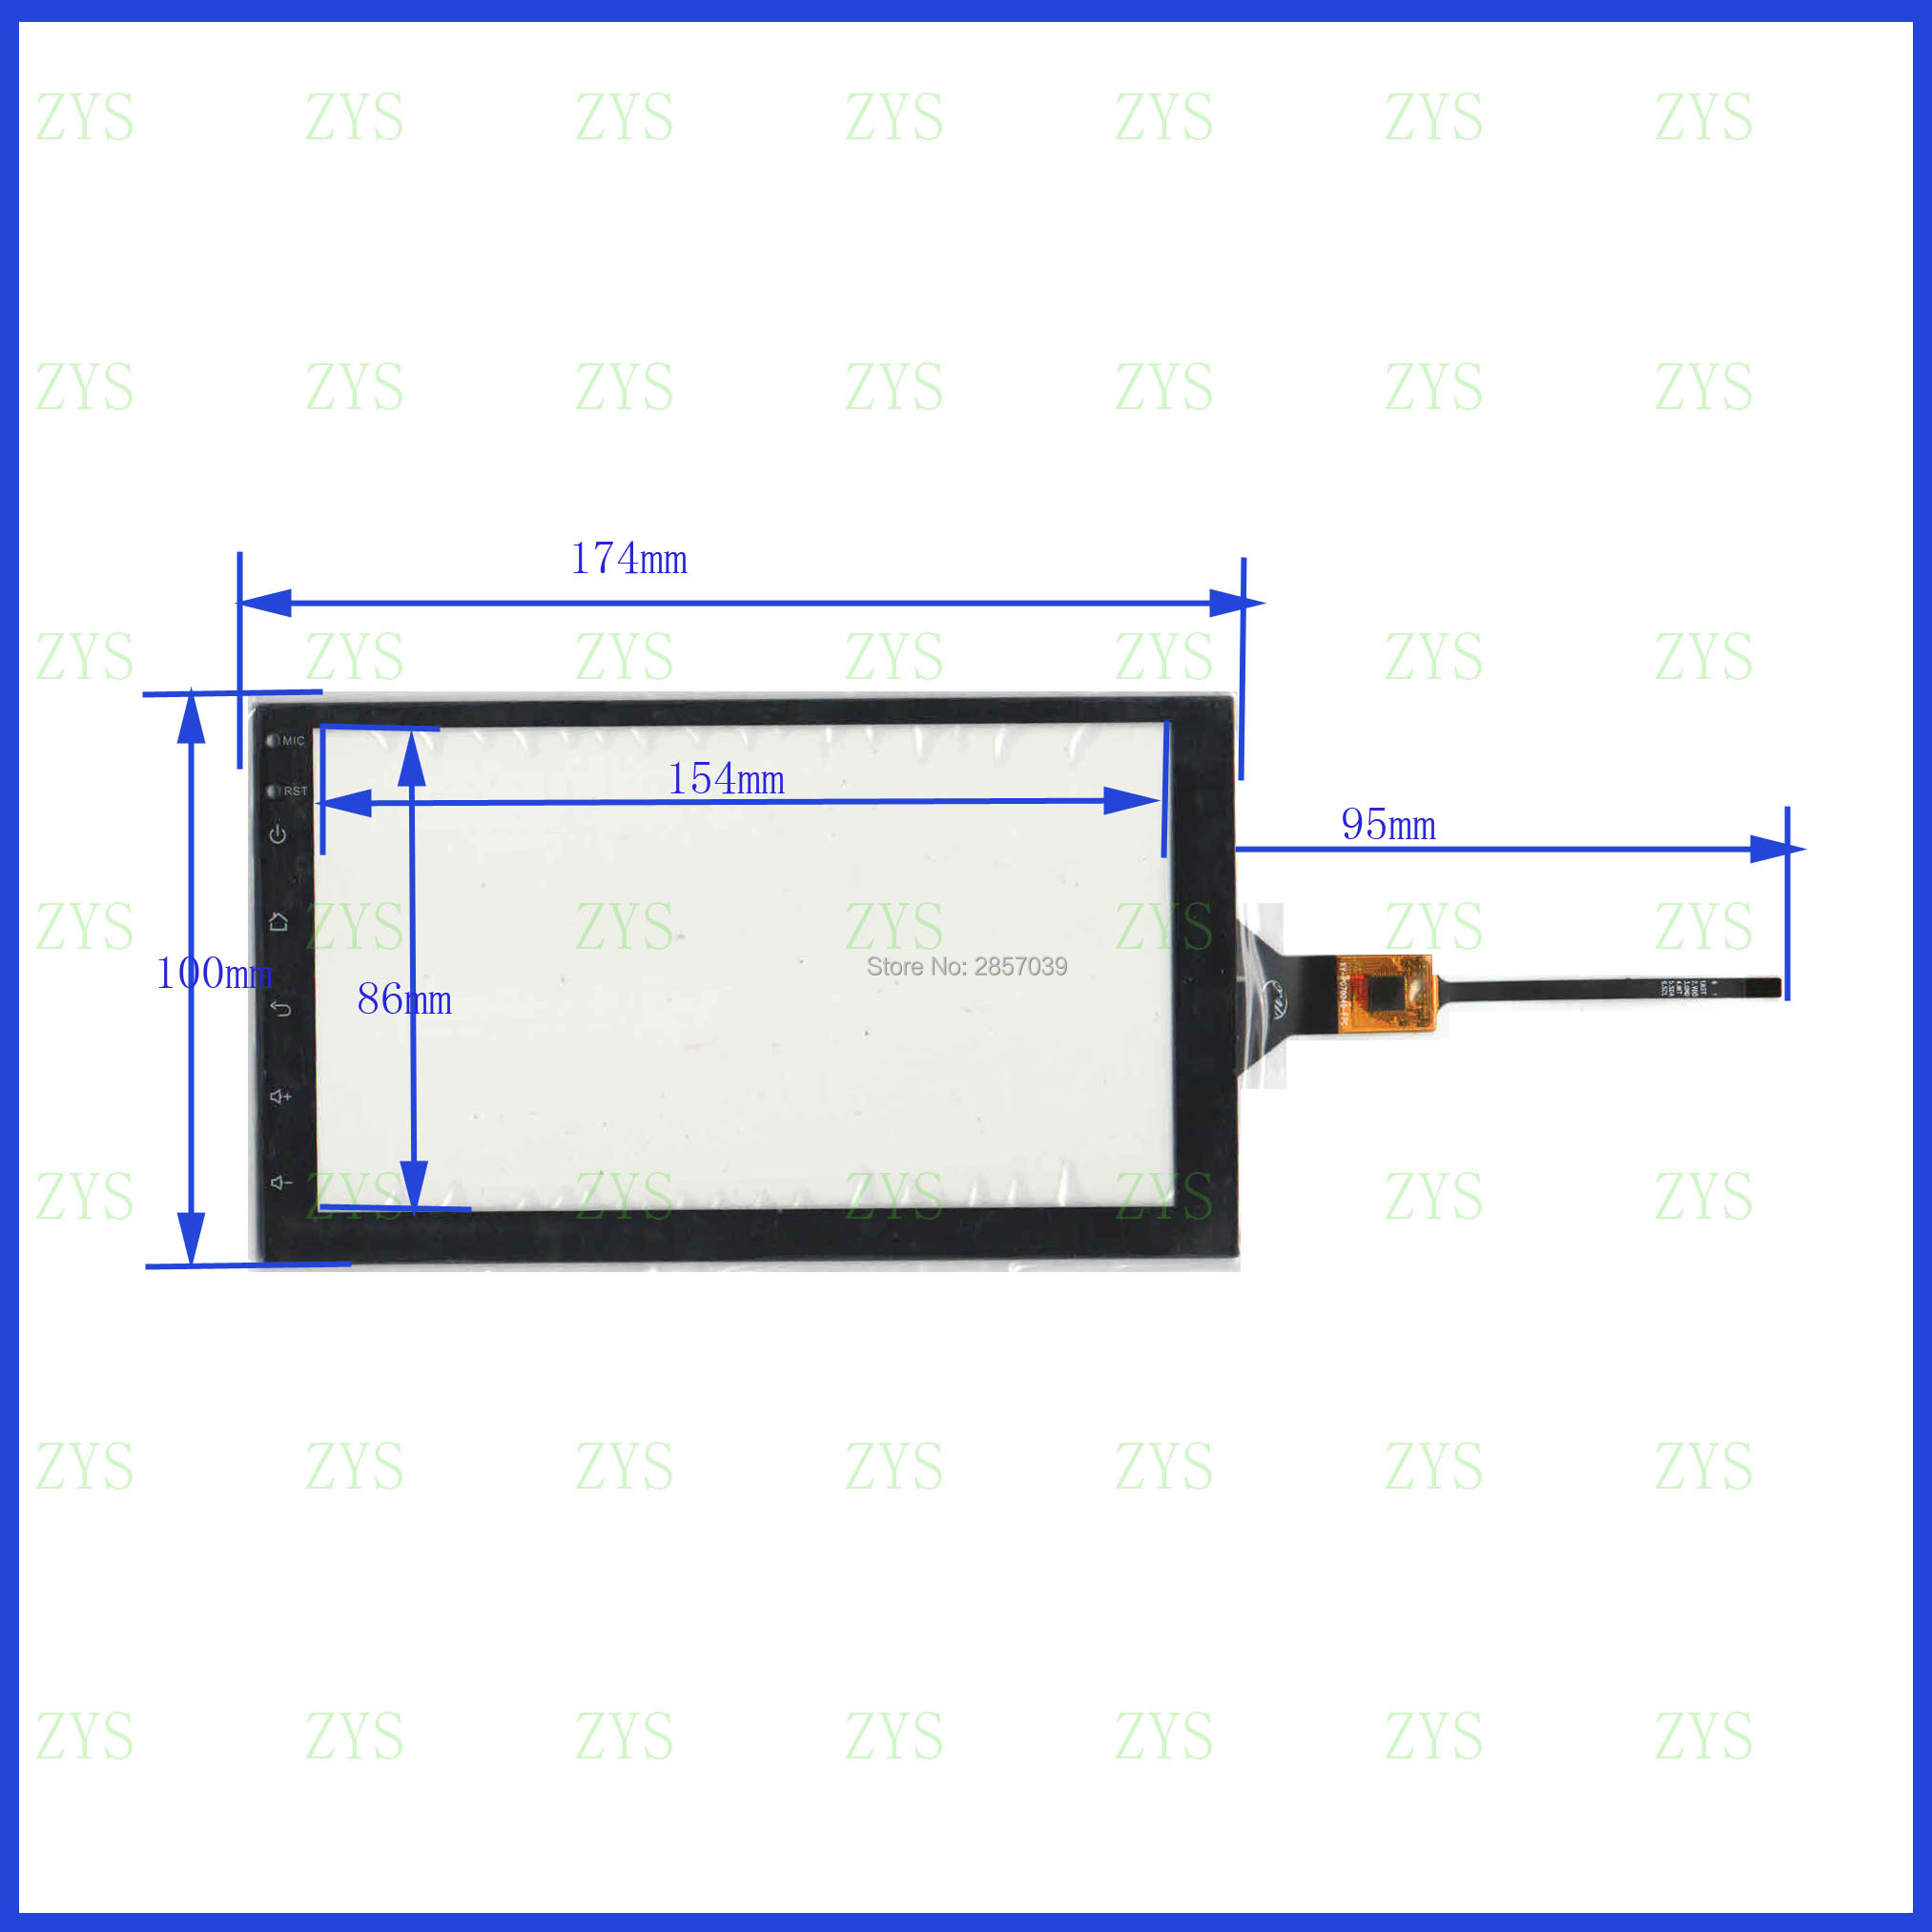 ZhiYuSun XY-PG70049-FPC 7inch Capacitive Screen For GPS CAR 175mm*100mm Touchsensor Glass